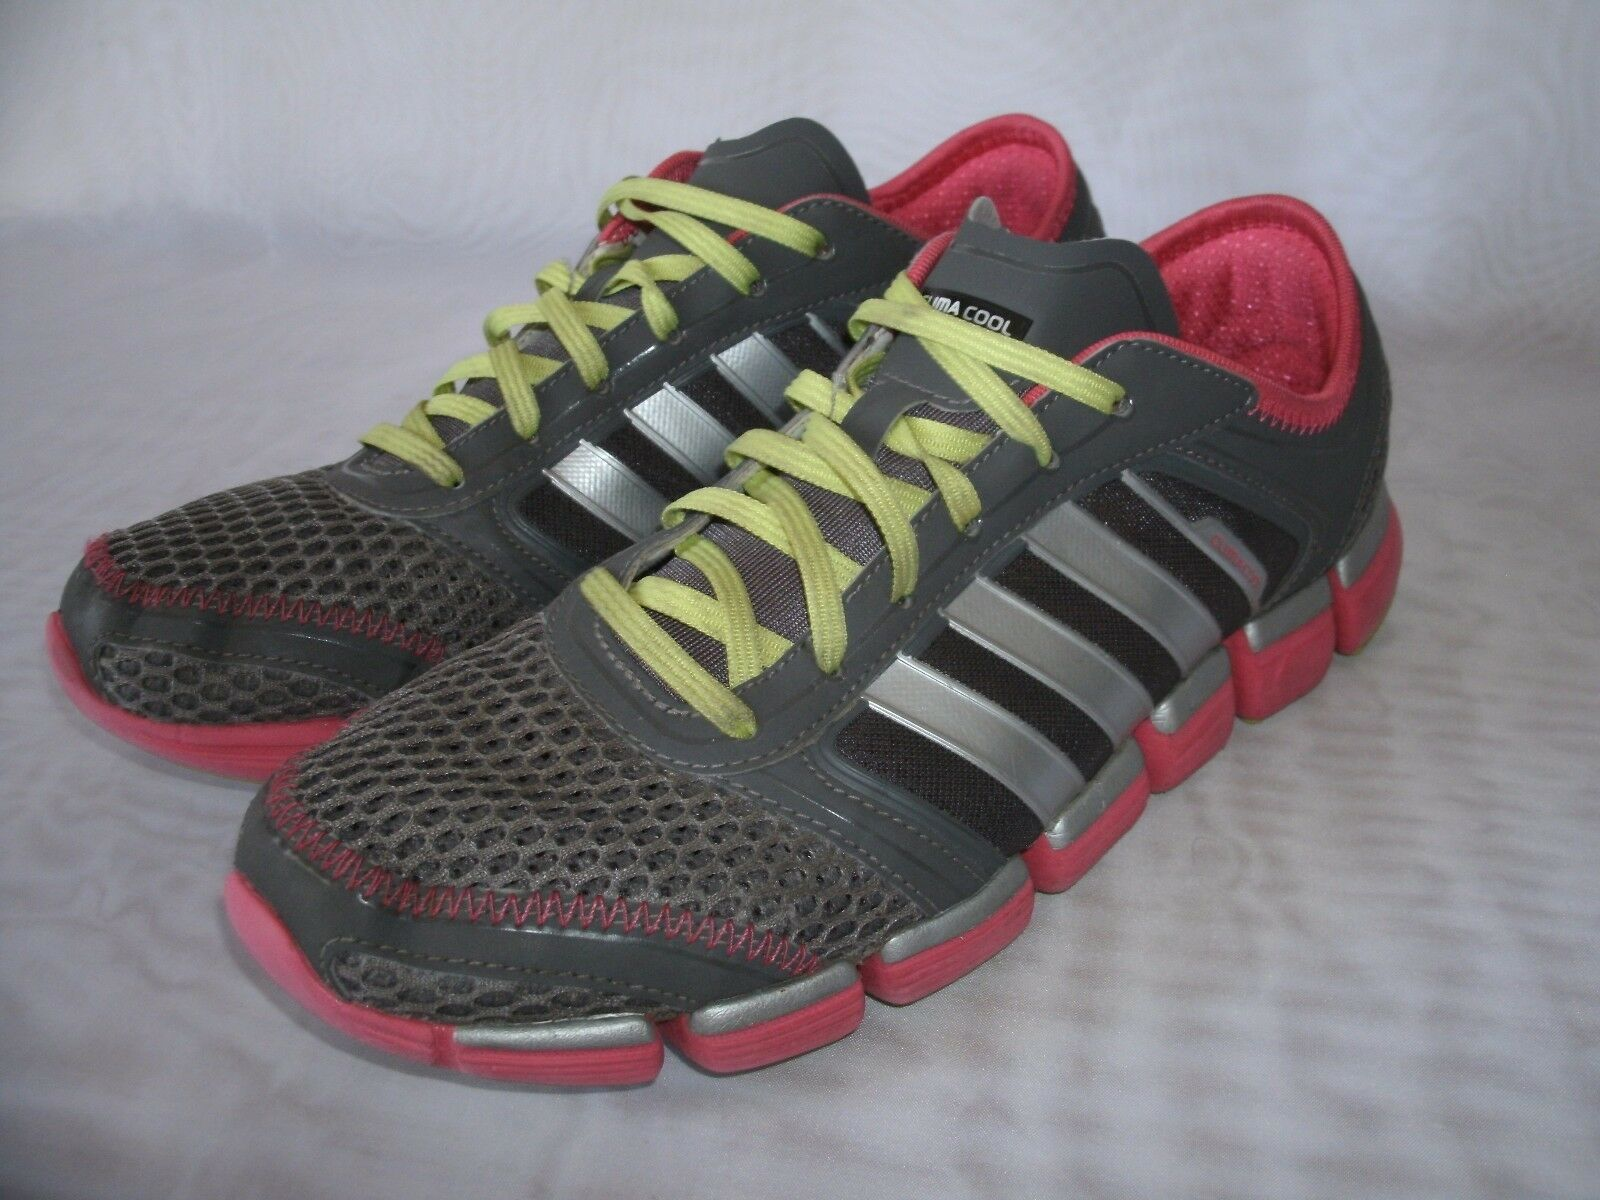 ADIDAS CLIMACOOL ATHLETIC TRAINER RUNNING SHOES / SIZE US 10 / WOMEN'S